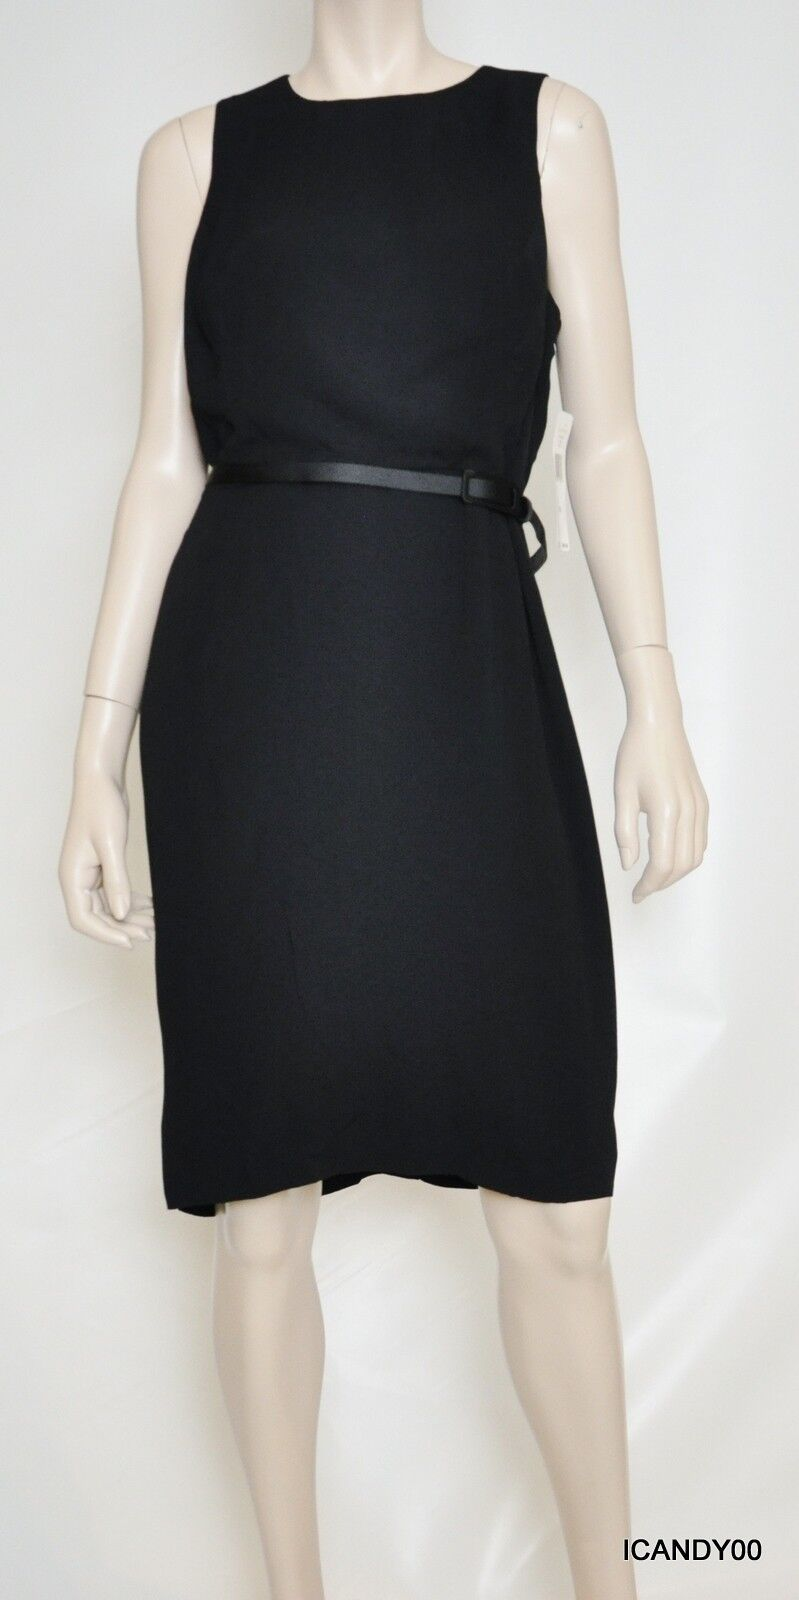 Nwt  Ralph Lauren Belted Sleeveless Knee-Length Dress Top schwarz 14